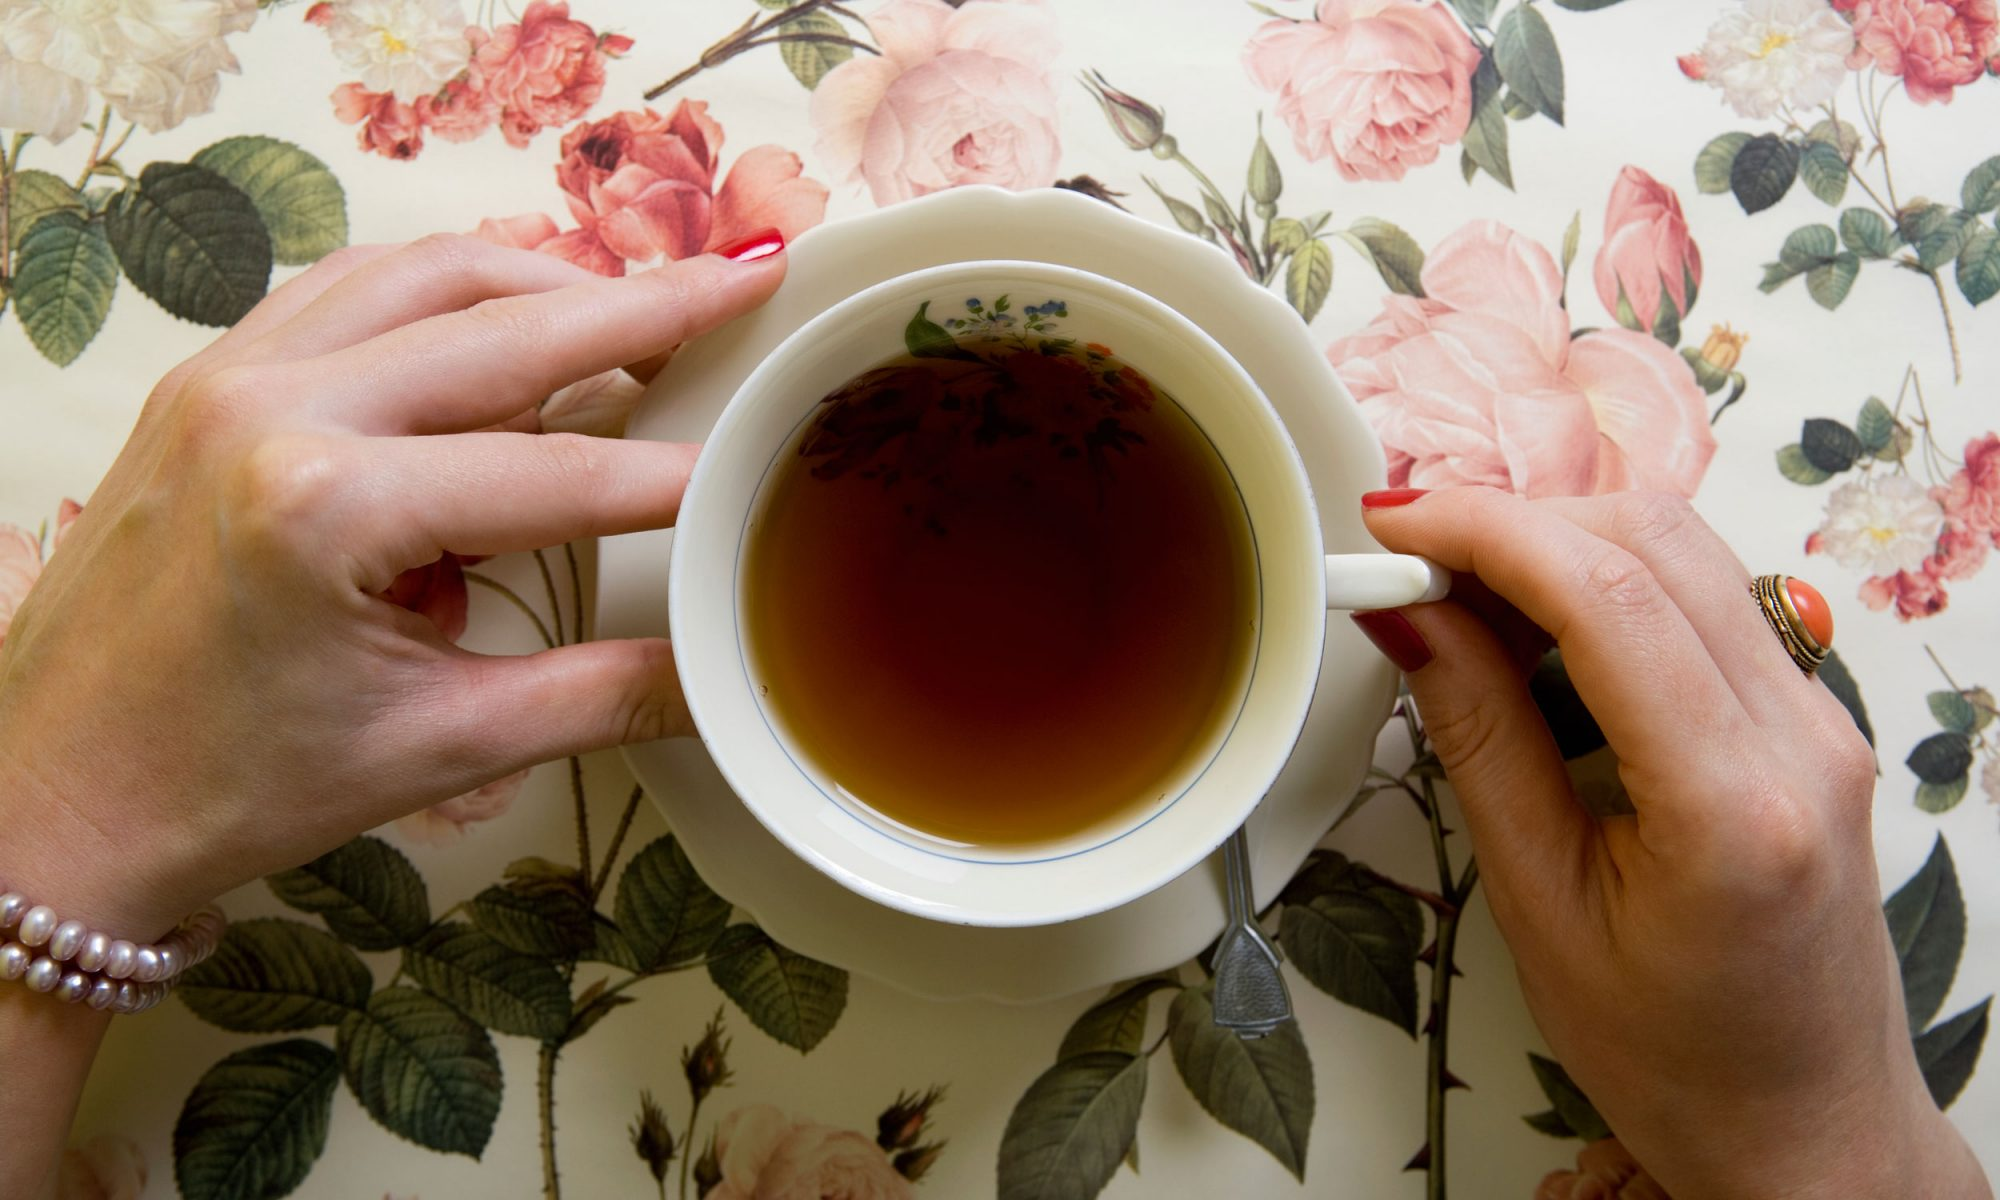 EC: What Makes Earl Grey Tea Different from Other Black Teas?